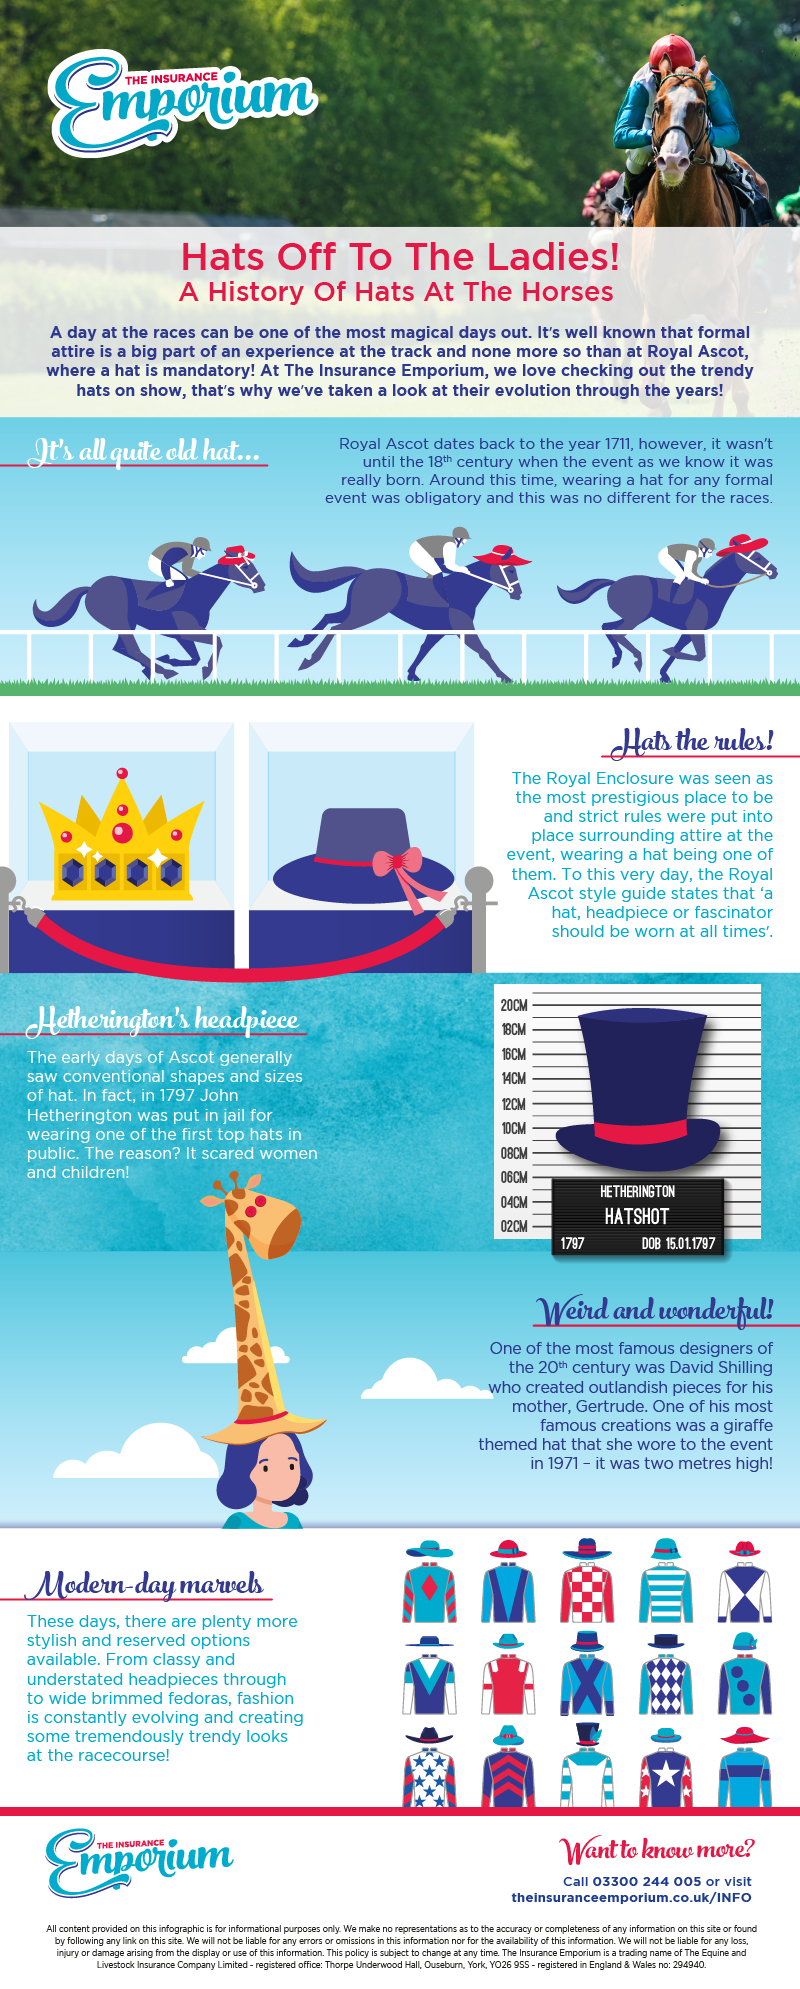 A History of Hats at The Horses